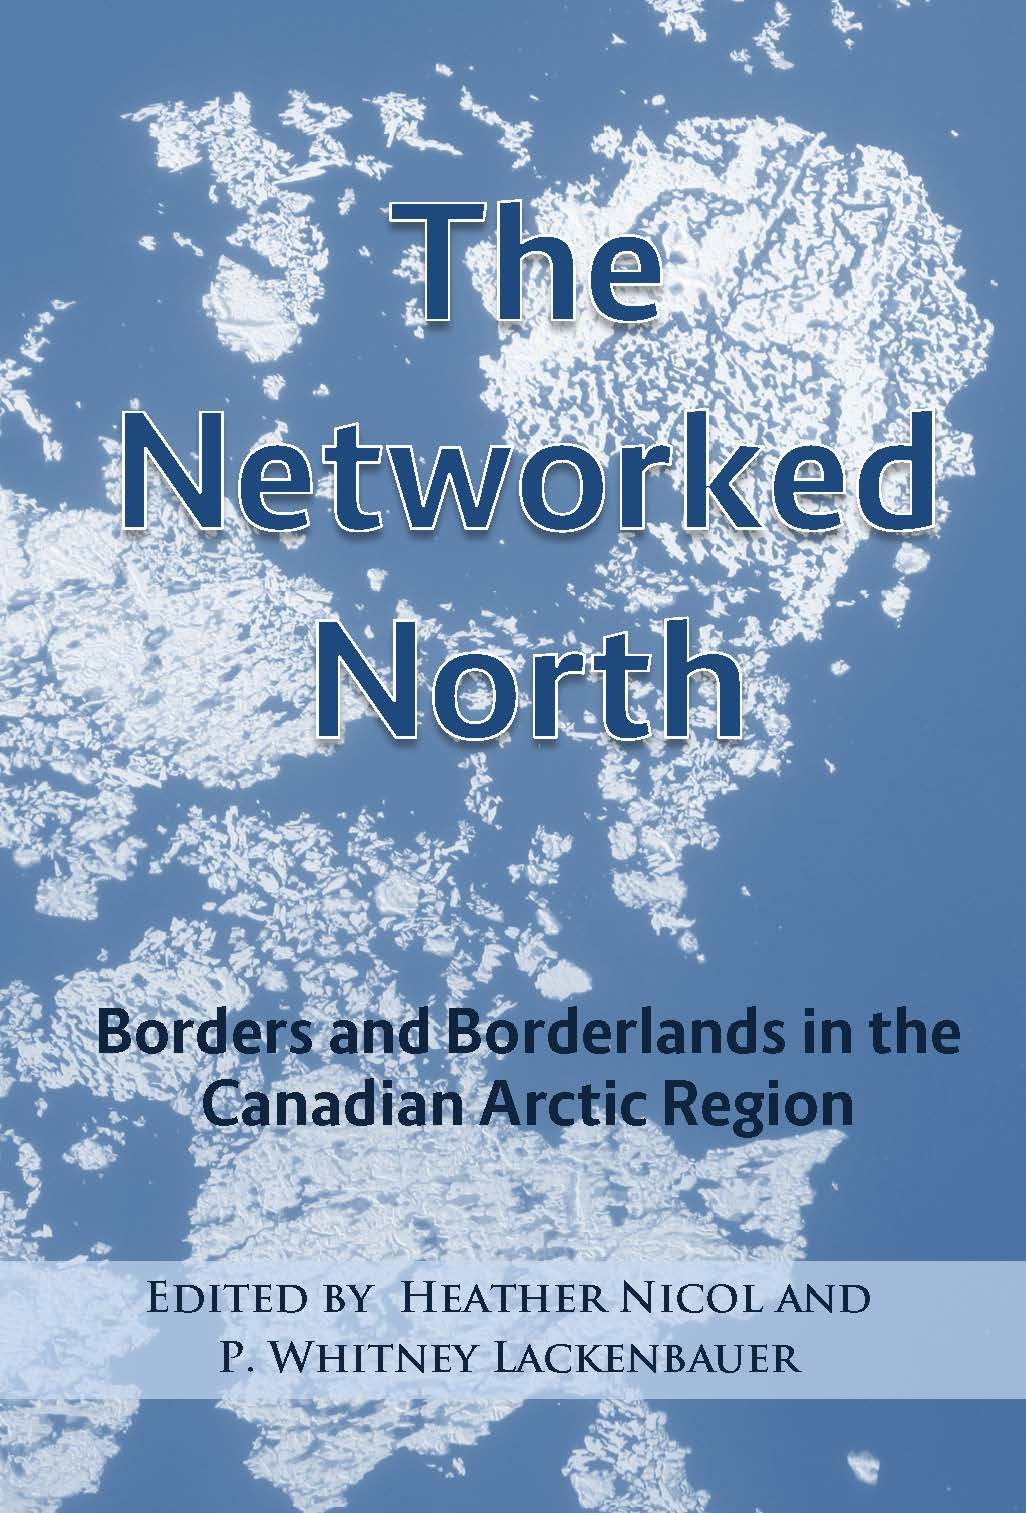 Front cover of Book THE NETWORKED NORTH edited by Heather Nicol and P. Whitney Lackenbauer,